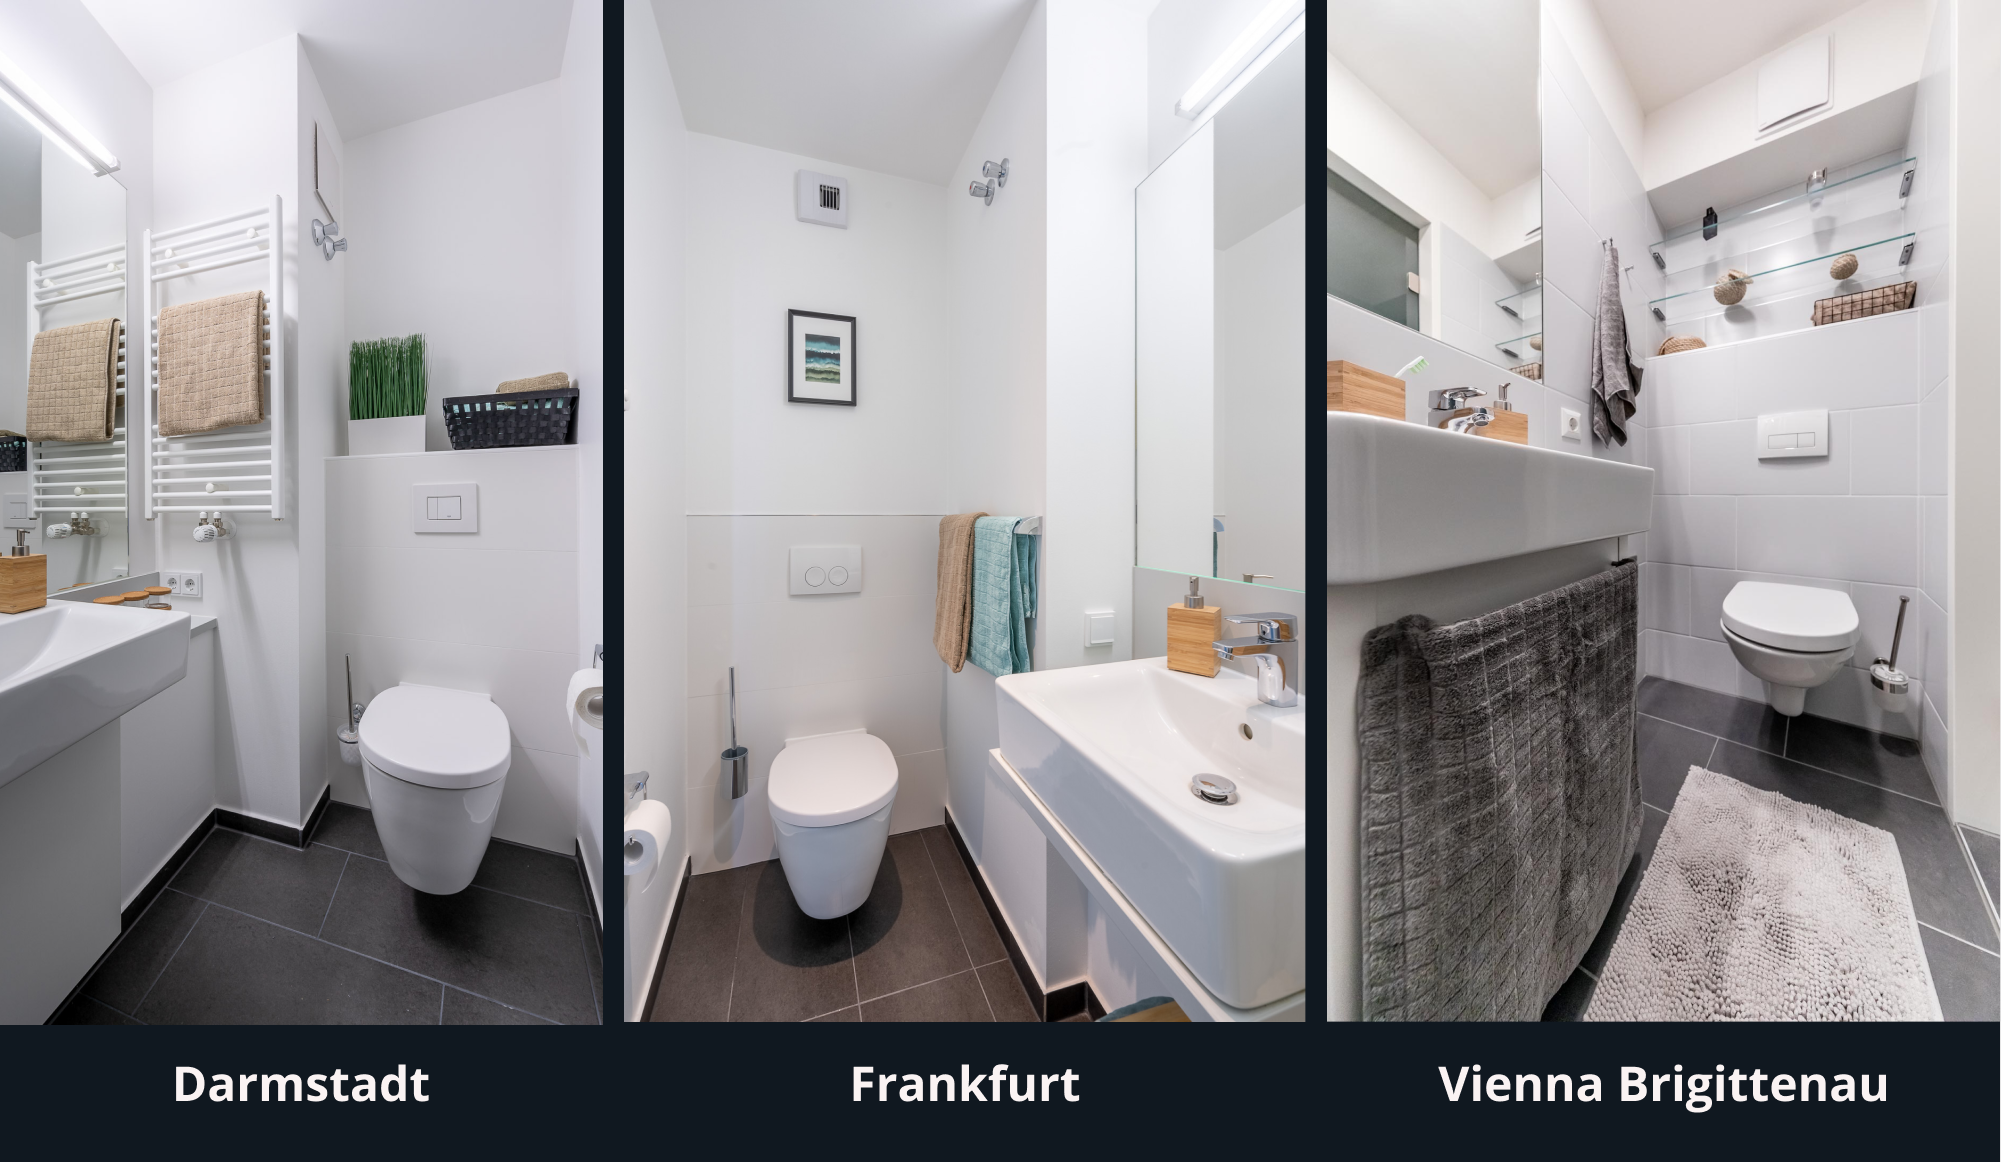 Three different pictures showing the toilet seat at Darmdtadt, Frankfurt and Vienna Brigittenau in almost the same perspective - from the front.